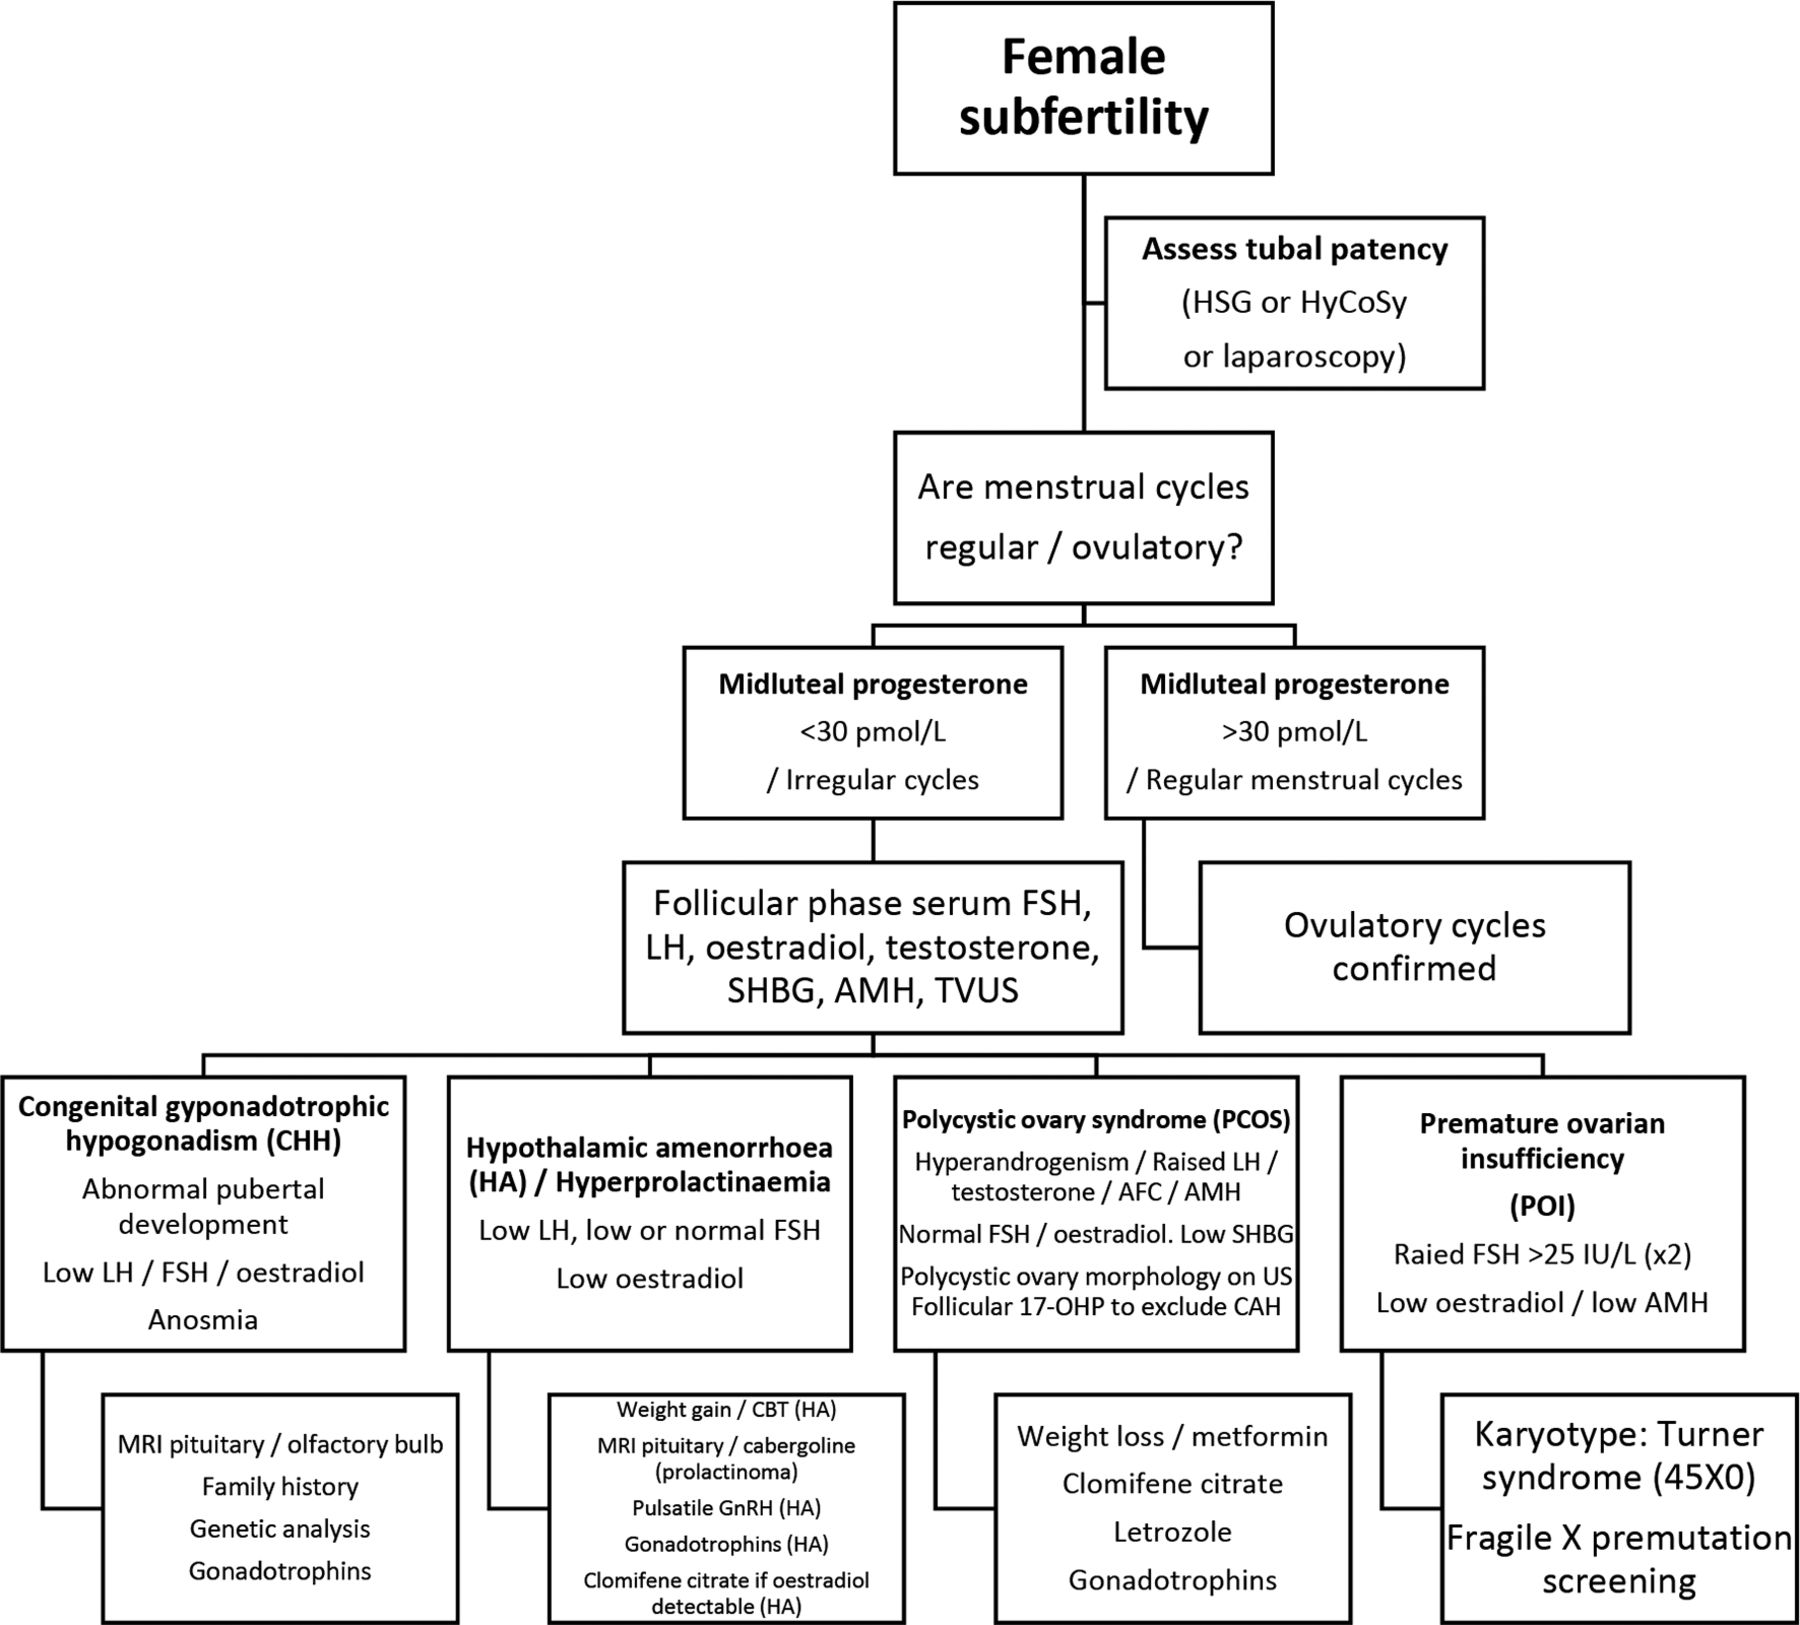 Investigation and management of subfertility | Journal of